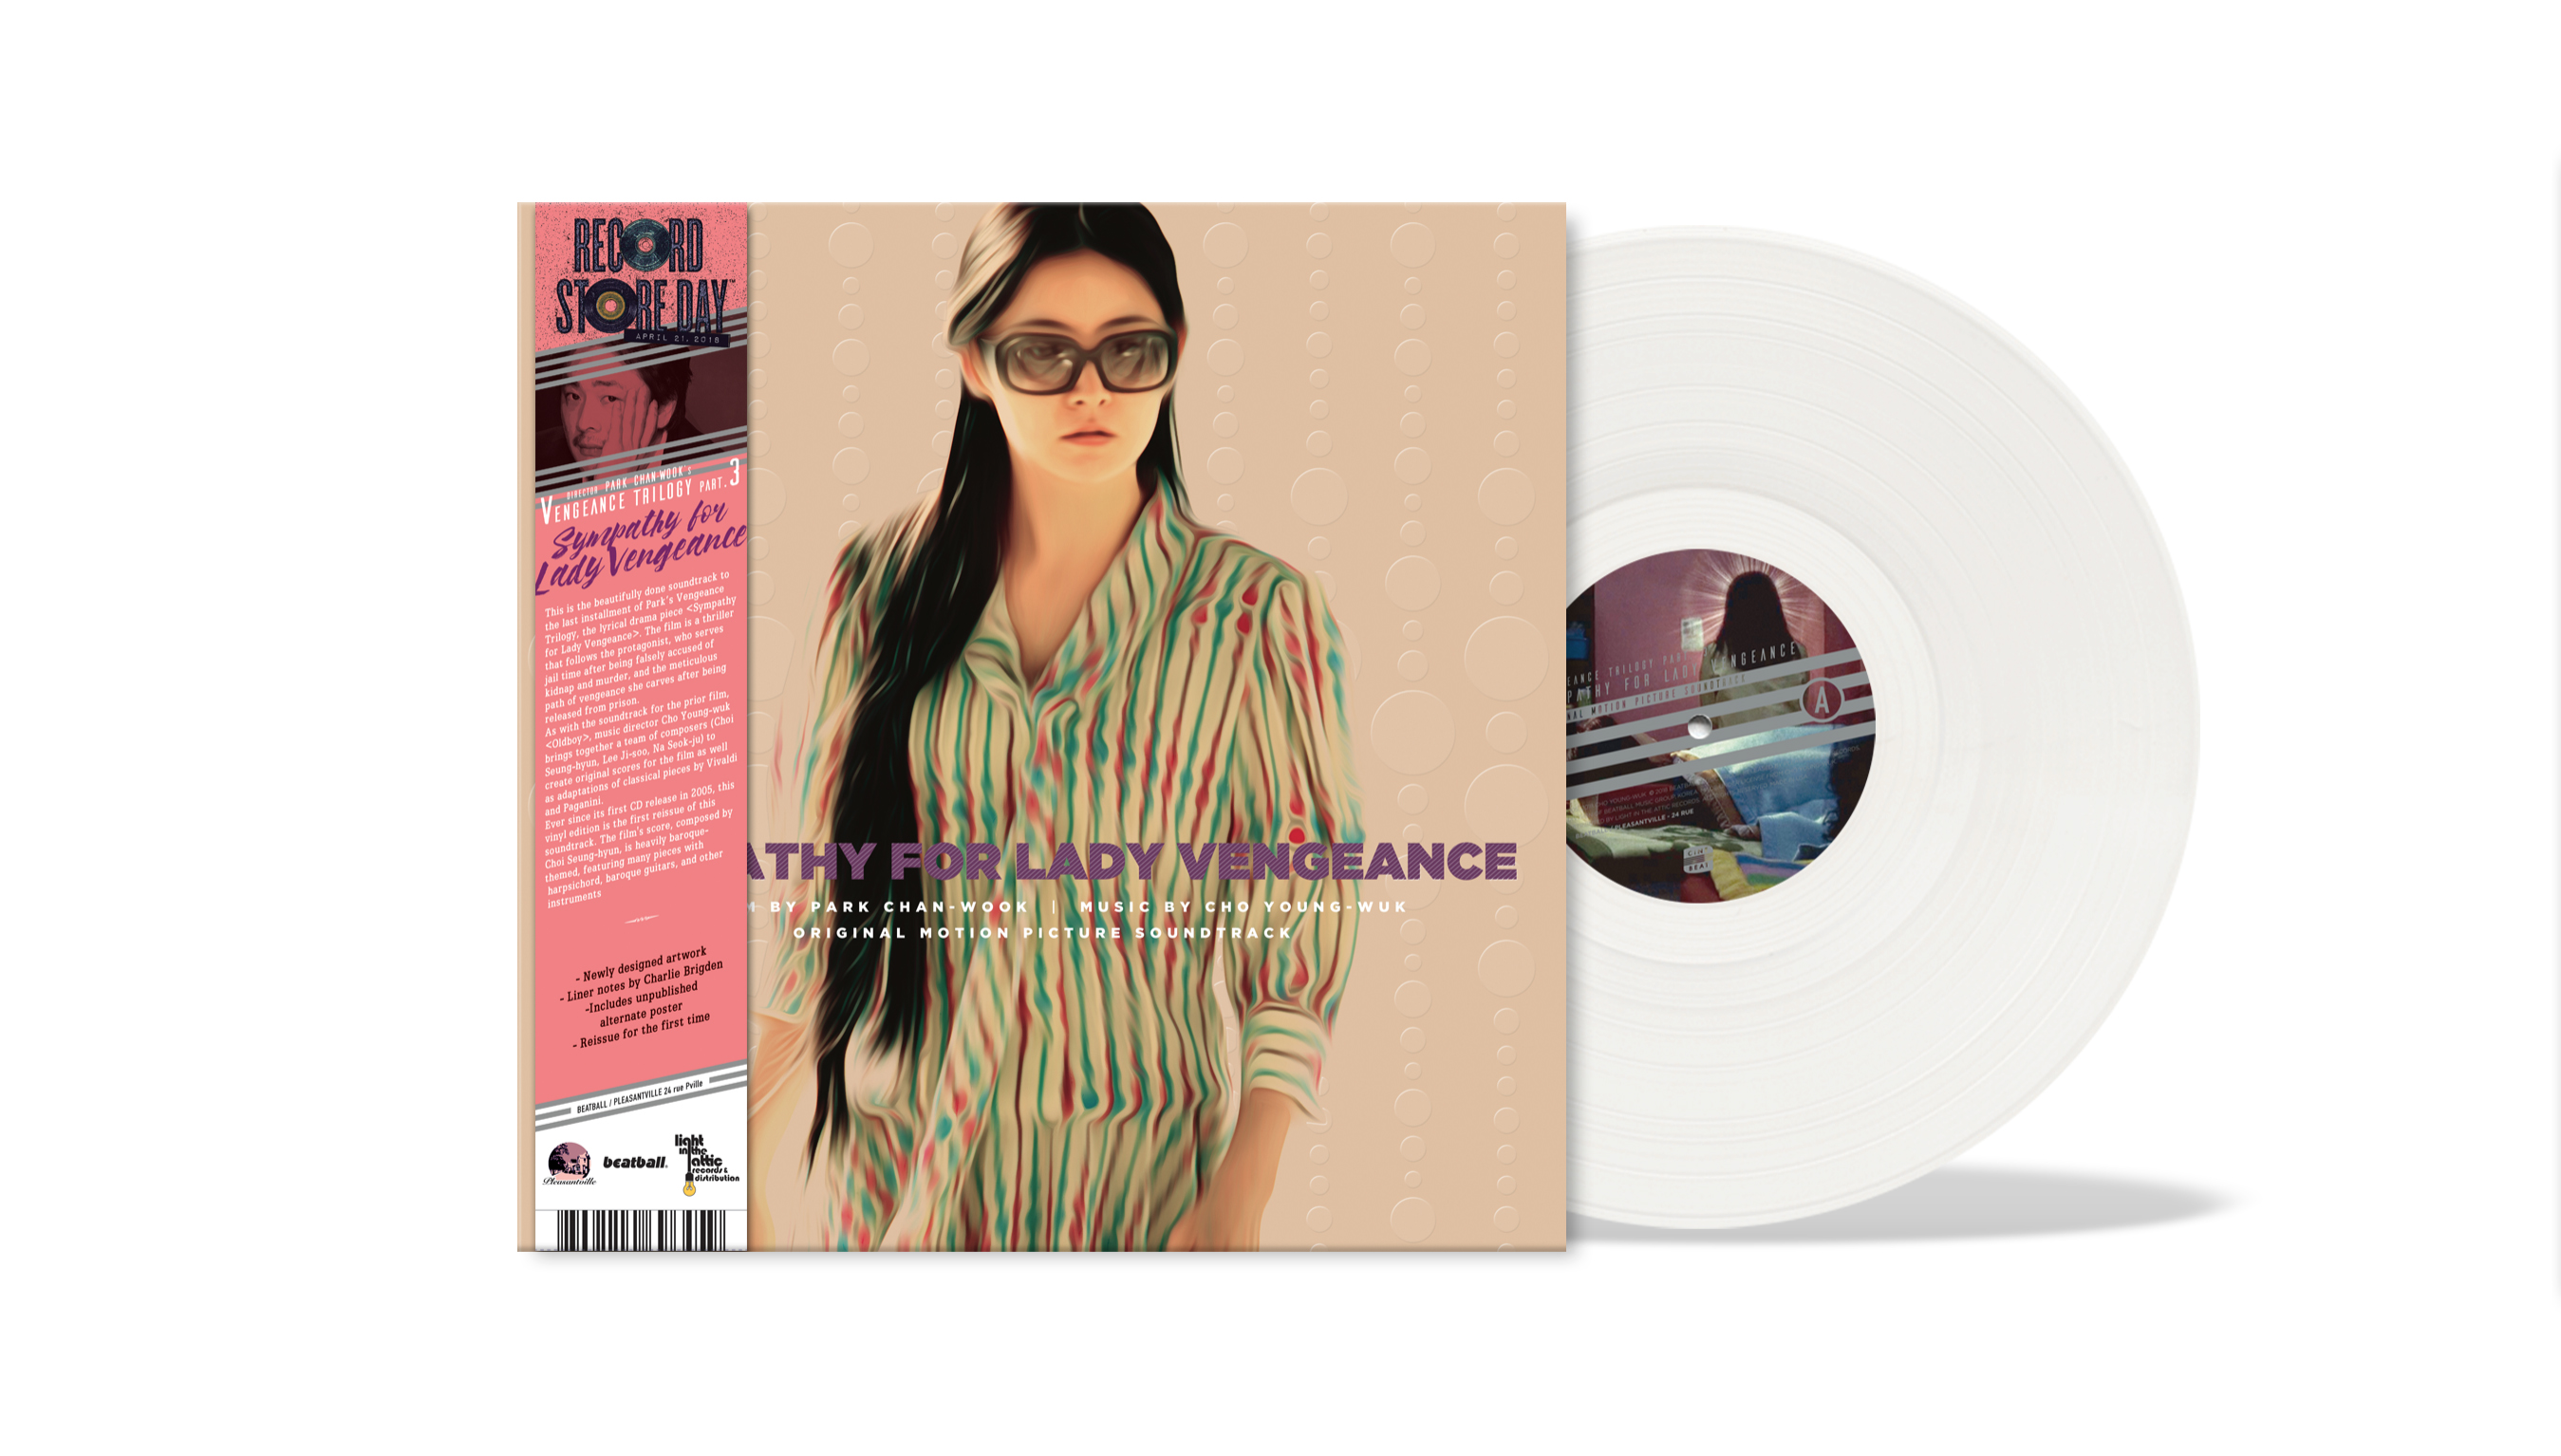 Sympathy For Lady Vengeance - Original Motion Picture Soundtrack: (Vengeance Trilogy Part. 3) (RSD 2018 EXCLUSIVE)